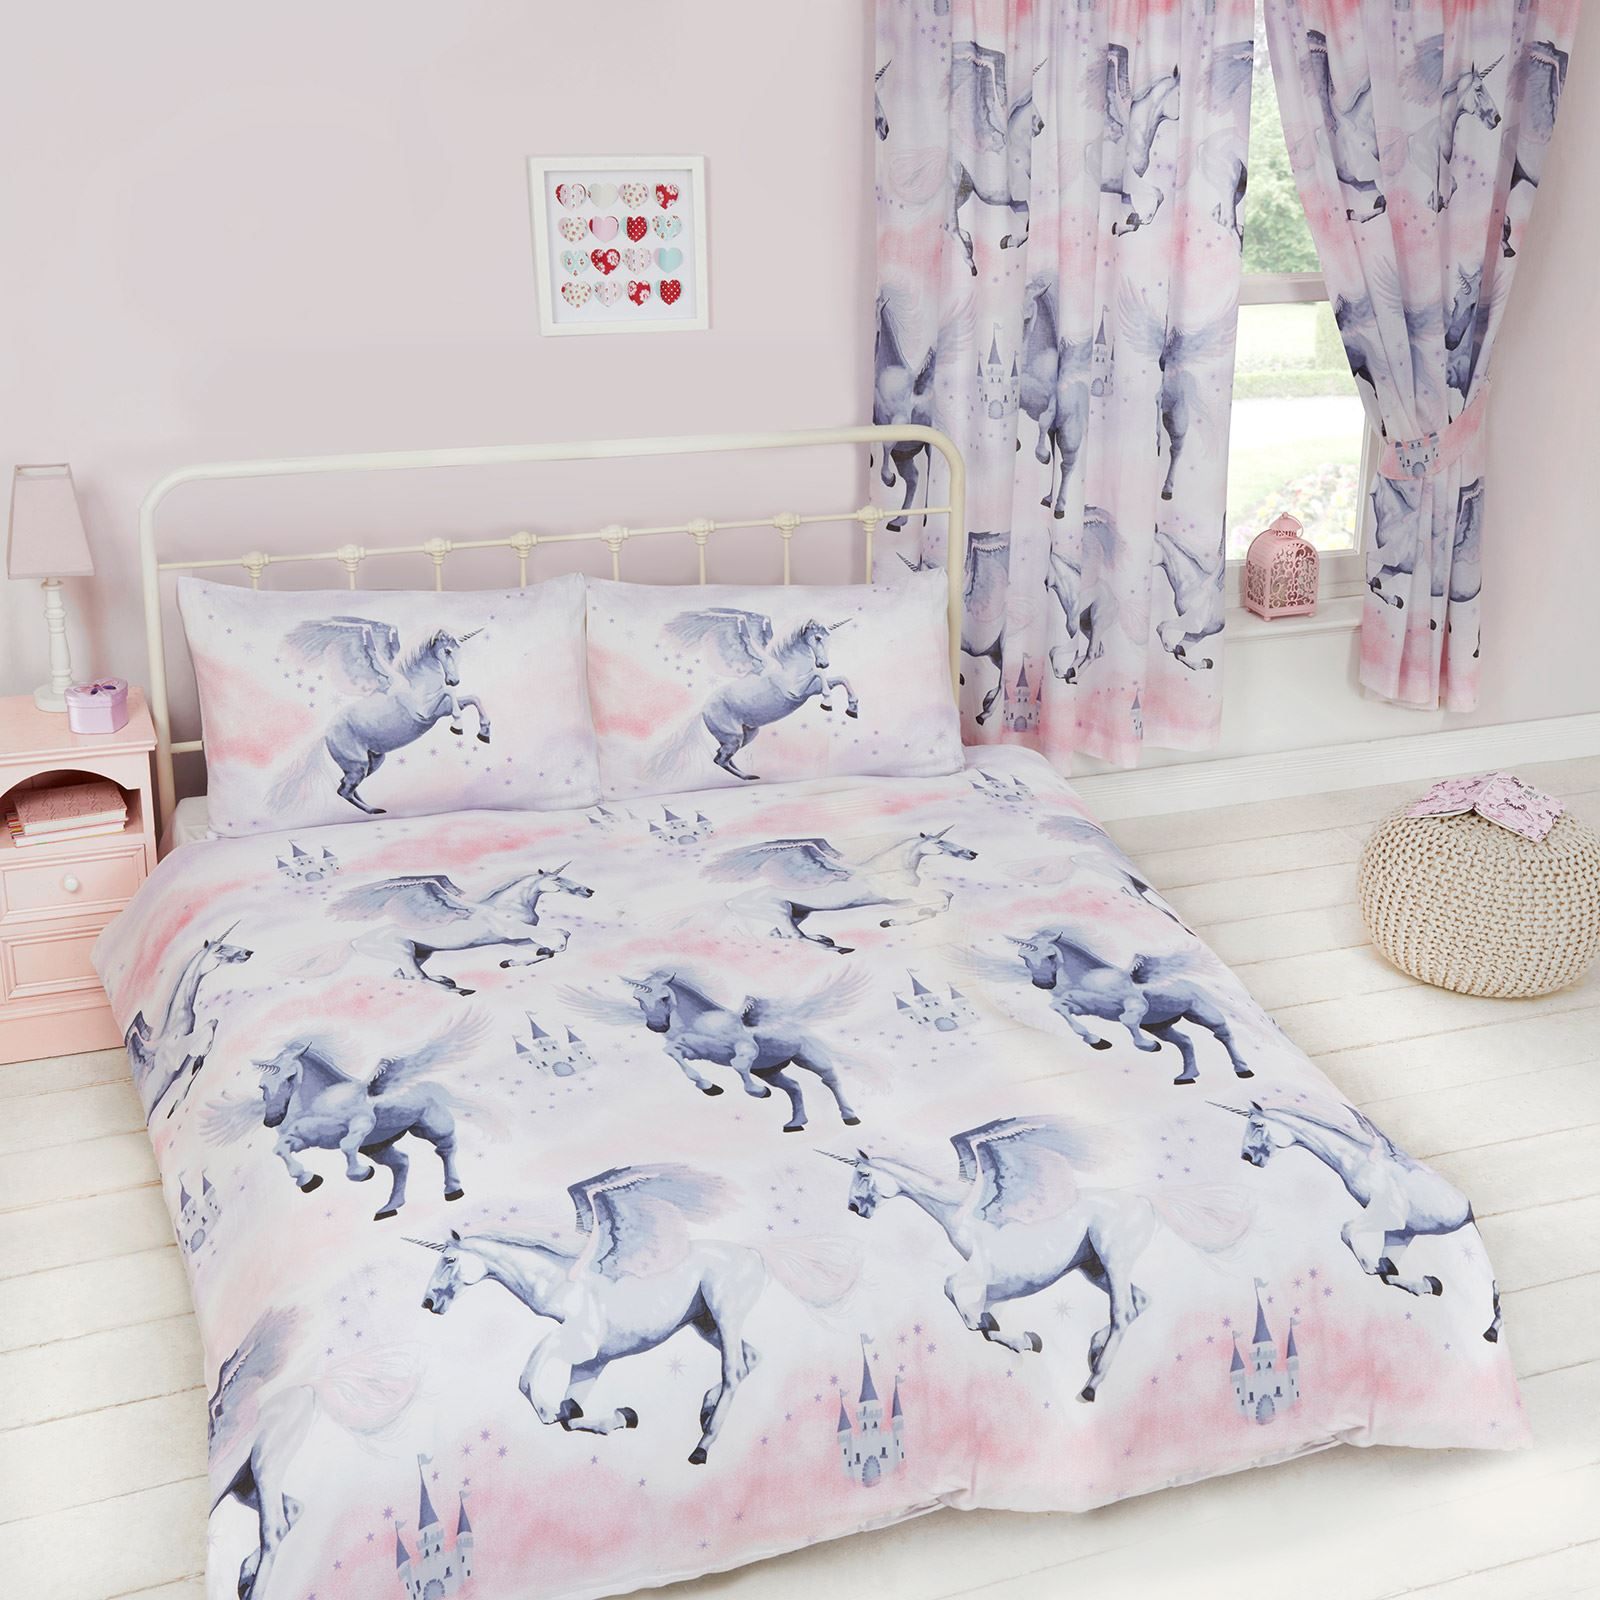 Double Doona Covers Stardust Unicorn Duvet Cover Sets And Matching Curtains